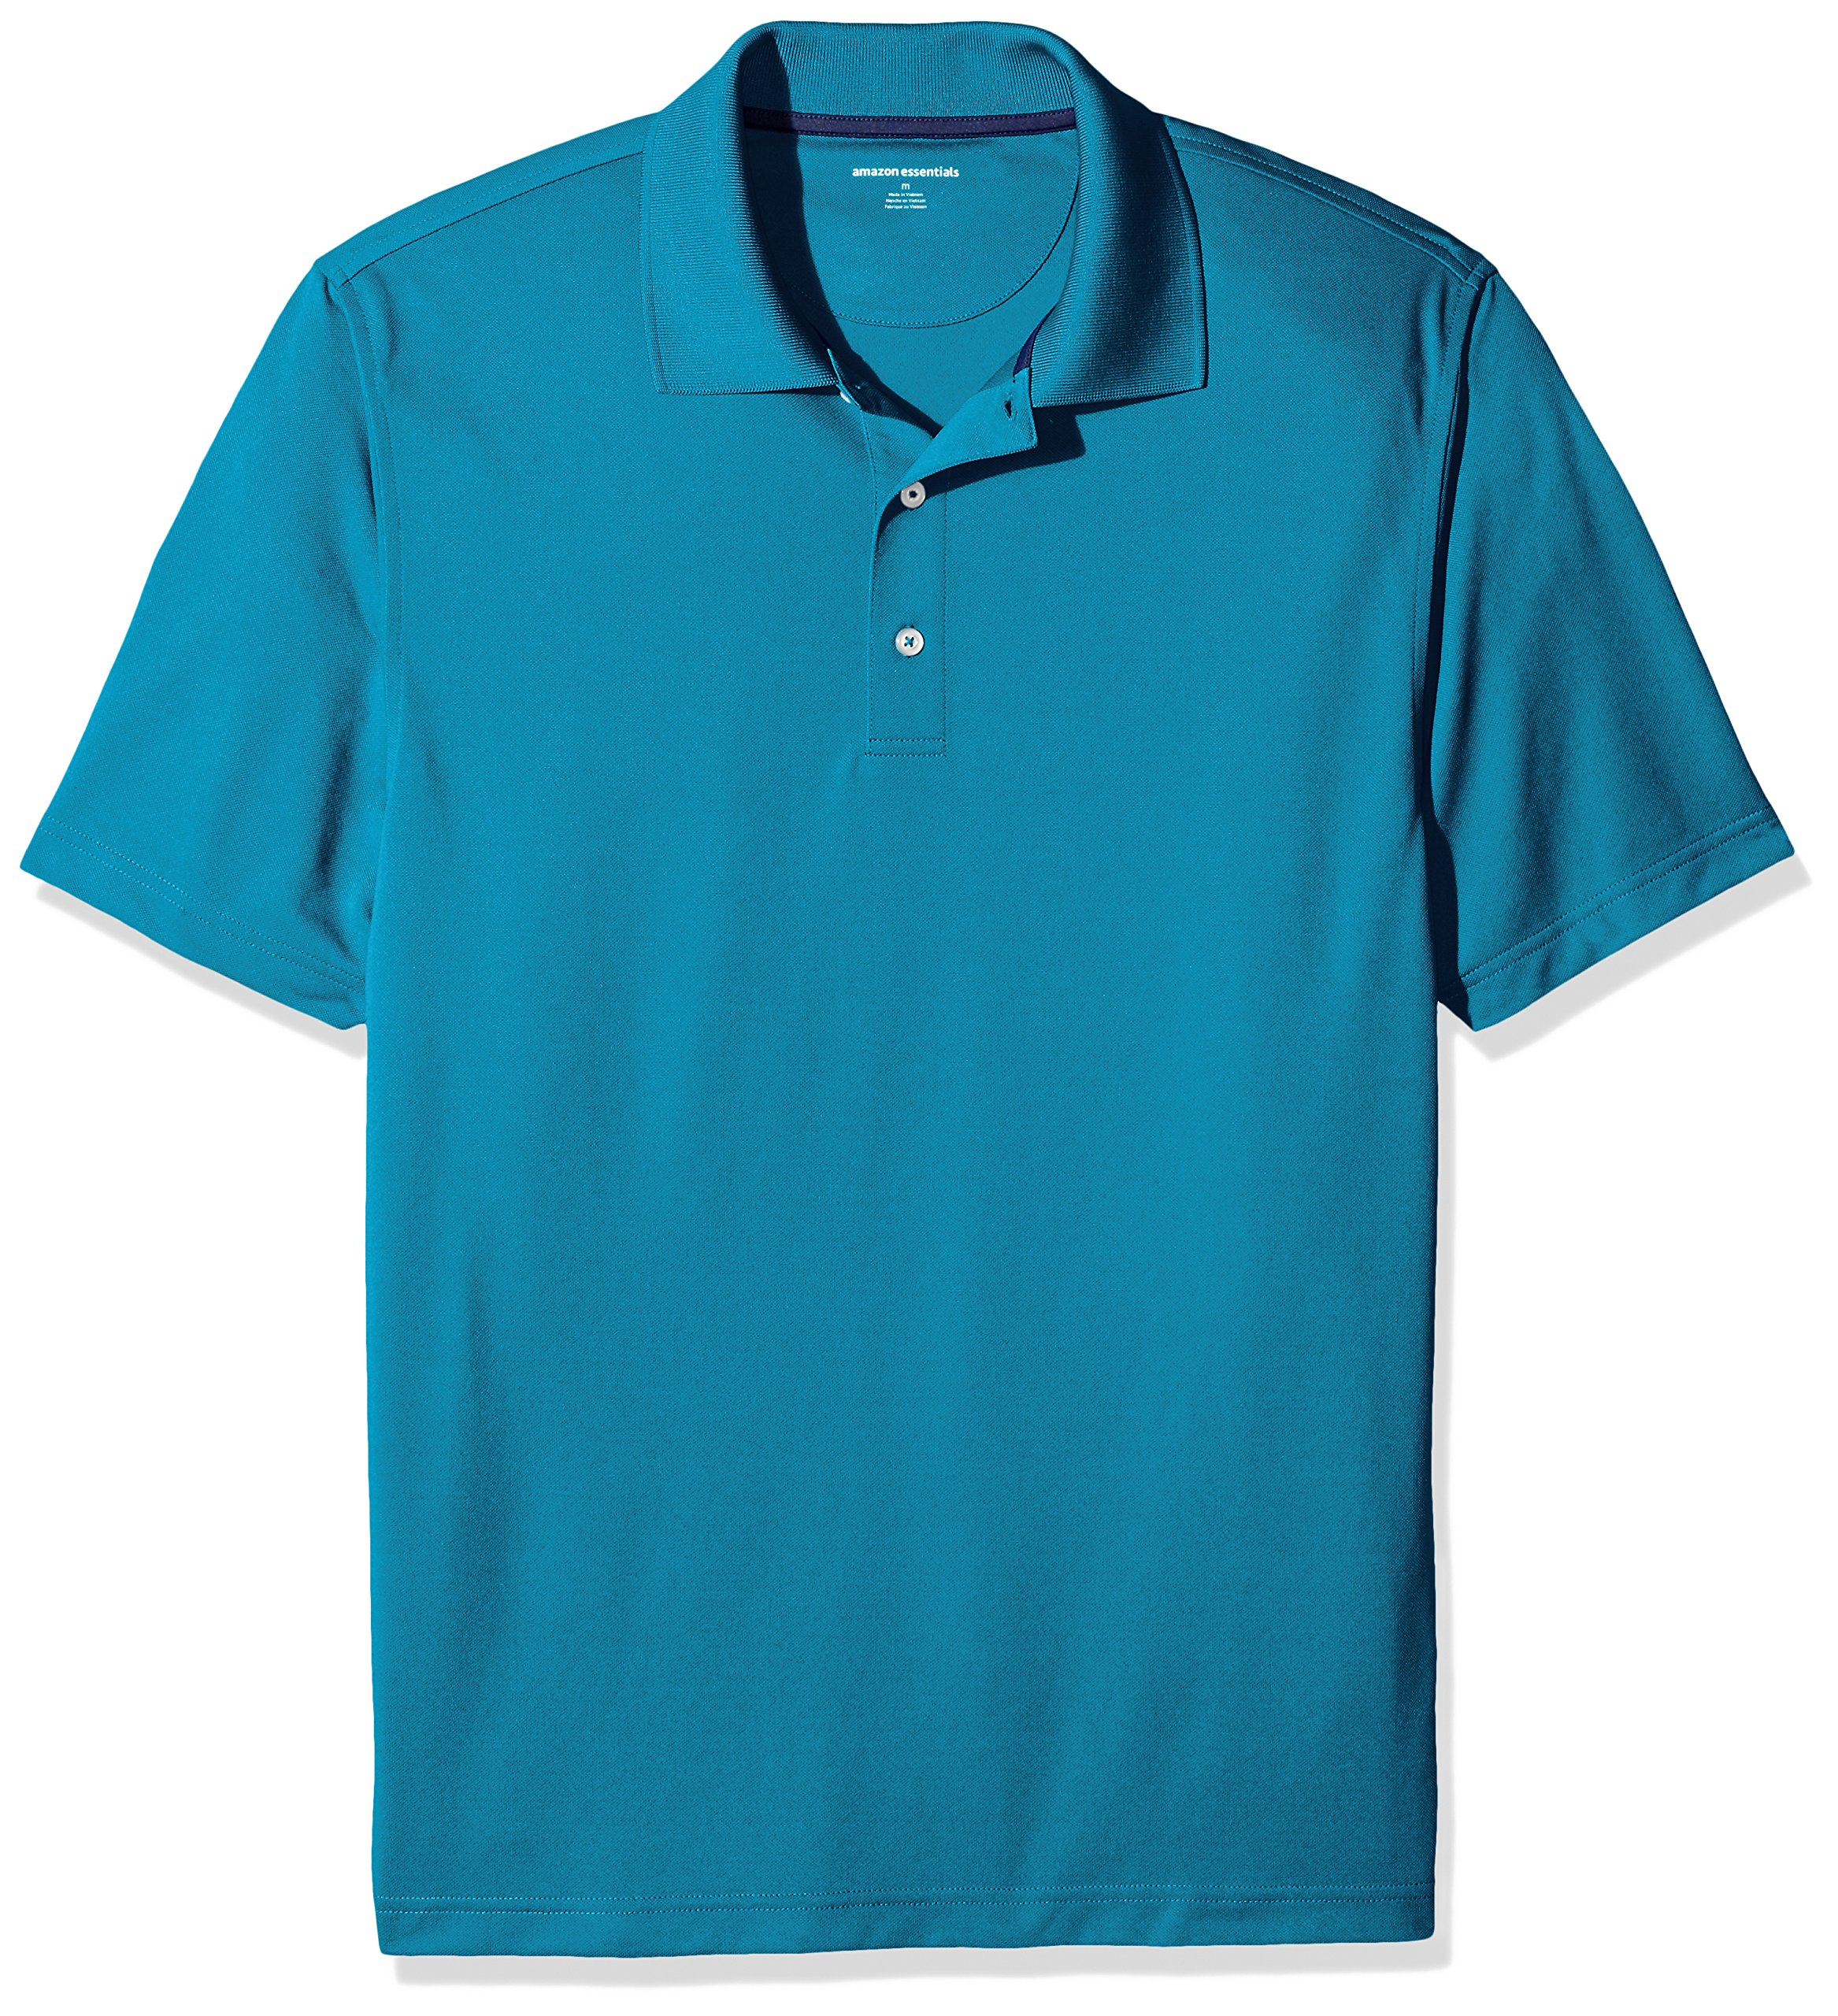 Amazon Essentials Men's Regular-Fit Quick-Dry Golf Polo Shirt, Deep Teal, X-Small